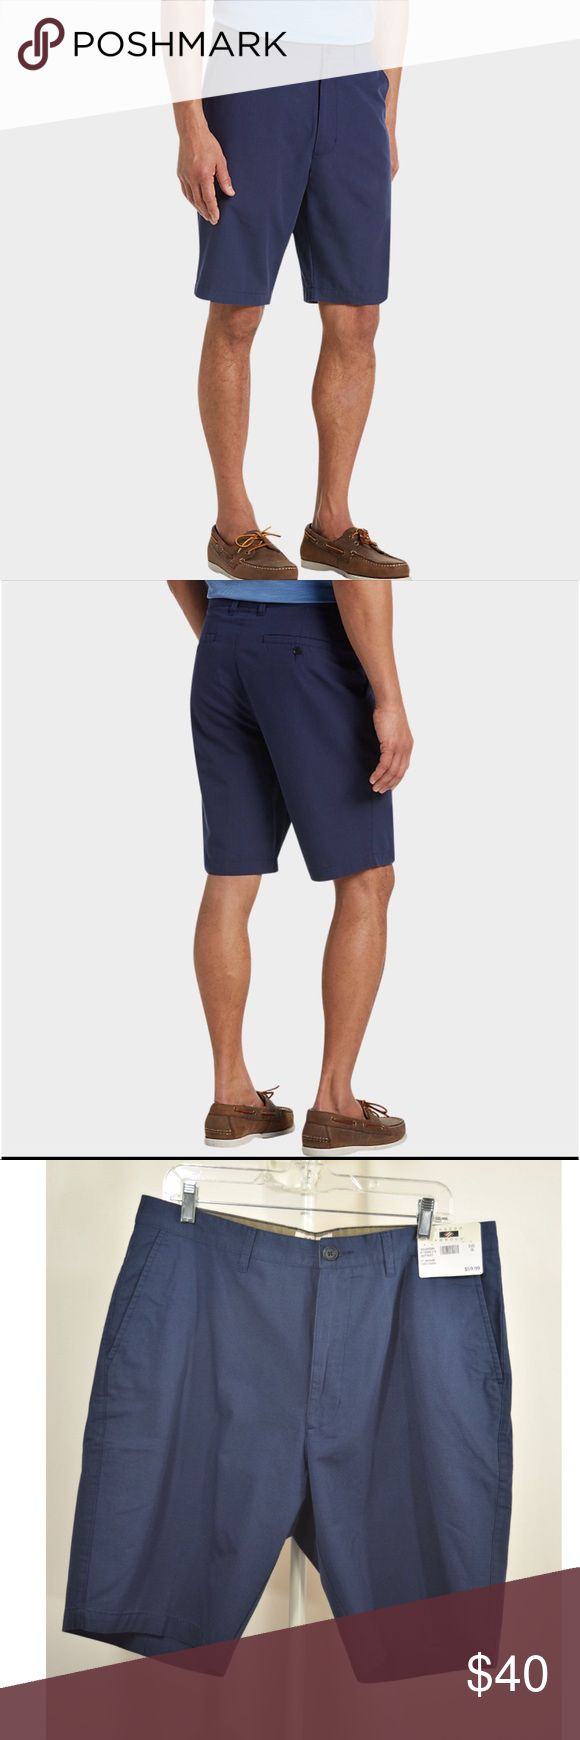 "NWT Men's Joseph Abboud Dark Blue Shorts Men's Joseph Abboud Shorts🔹Dark Blue🔹Brand new with tags🔹Modern Fit🔹100% cotton🔹Flat Front🔹Modern Fit🔹Inseam is 10""🔹Size 36🔹Smoke and pet free home Joseph Abboud Shorts Flat Front"